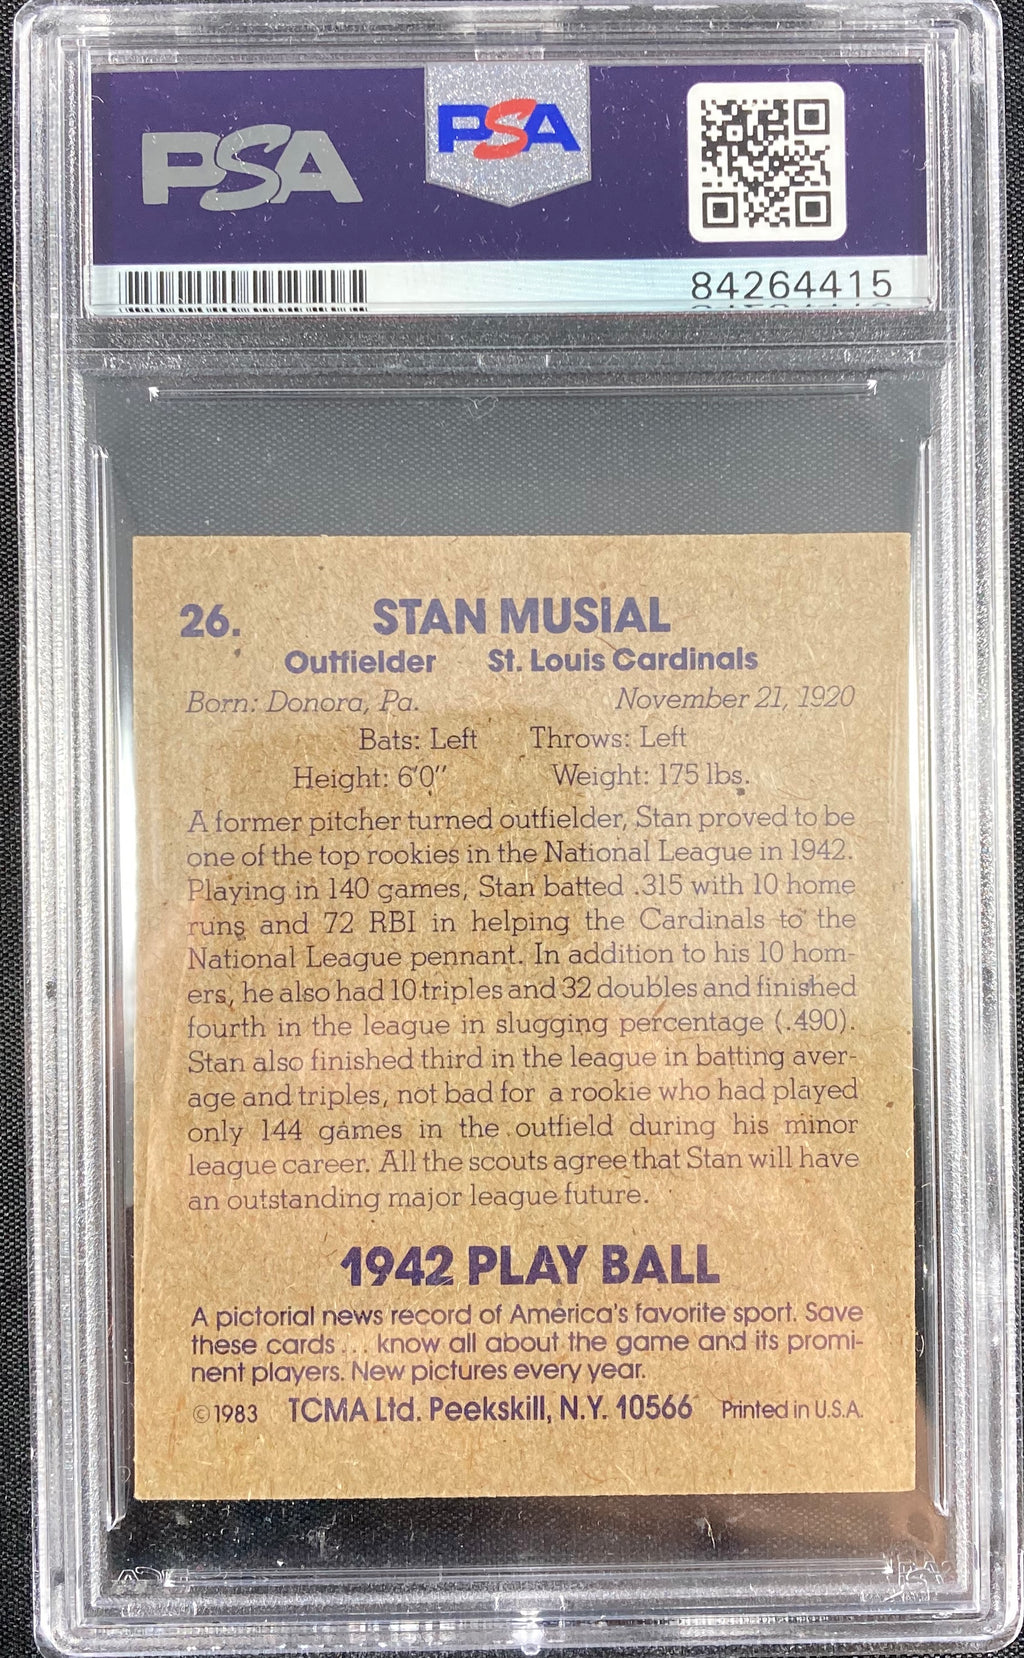 Stan Musial auto card TCMA #26 1980 St. Louis Cardinals PSA Encapsulated - JAG Sports Marketing